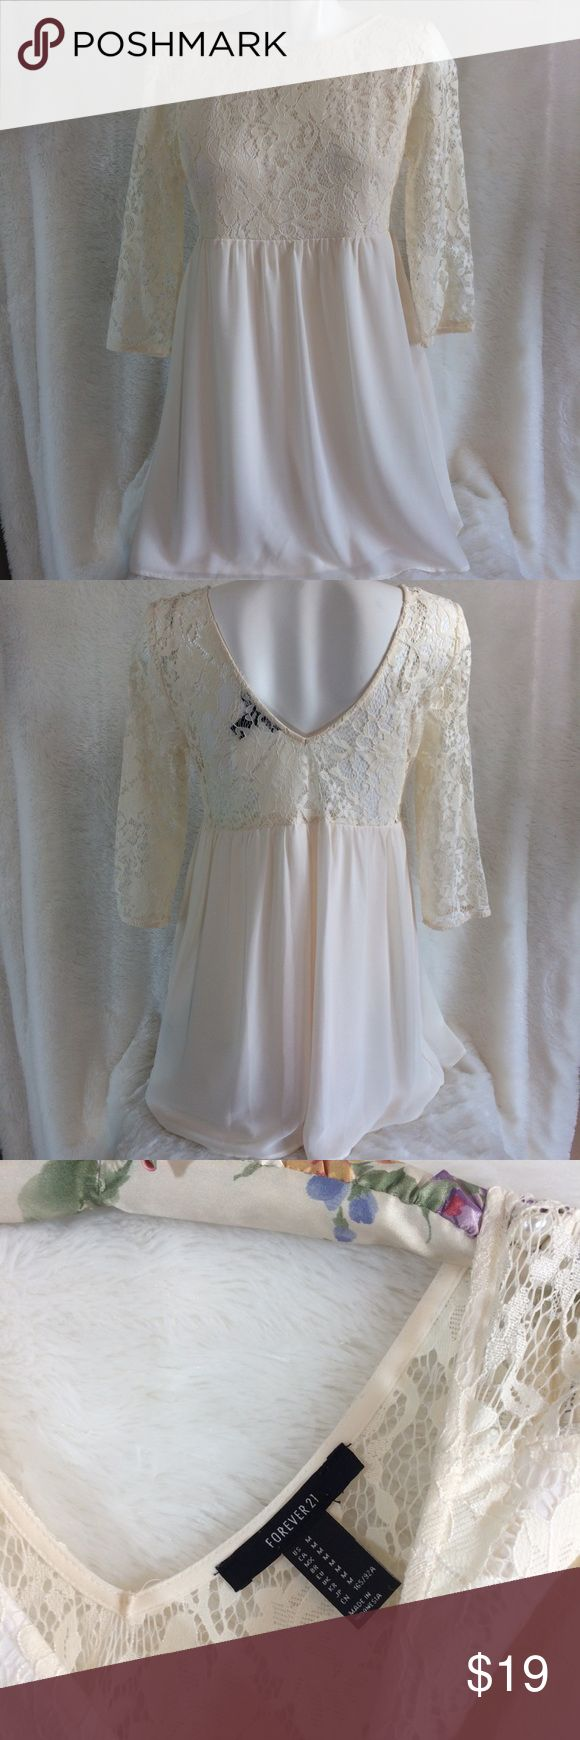 Forever 21 OffWhite Ivory Floral Lace Fest Dress M Pre-Owned, EXCELLENT CONDITION! NO FLAWS! VERY LIGHTLY USED! Forever 21 Brand, Off-White/Ivory Colored, Floral Lace Pattern, Festive/Holiday/Special Occasion, Sheer/Stretch Material, Women's Dress, Size Medium. SHIPPED SAME DAY, OR NEXT DAY SHIPPING! Bundle Two or More Items and Save 20%! :) Forever 21 Dresses Midi